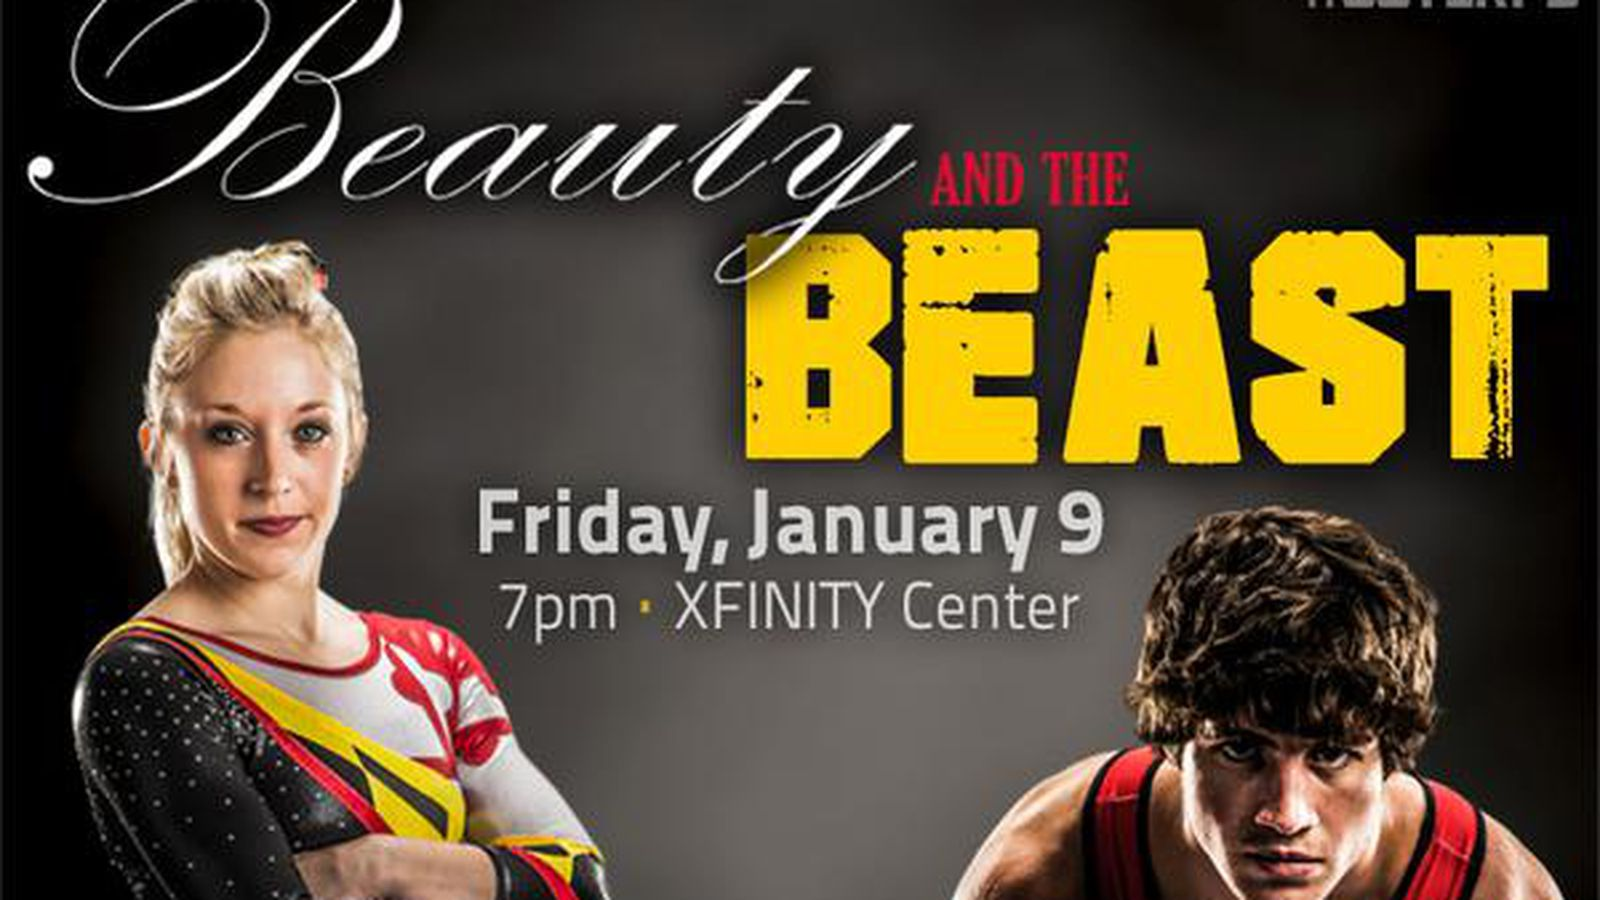 It's gymnastics! It's wrestling! It's two, two, two sports in one. Previewing Maryland's Beauty & the Beast.